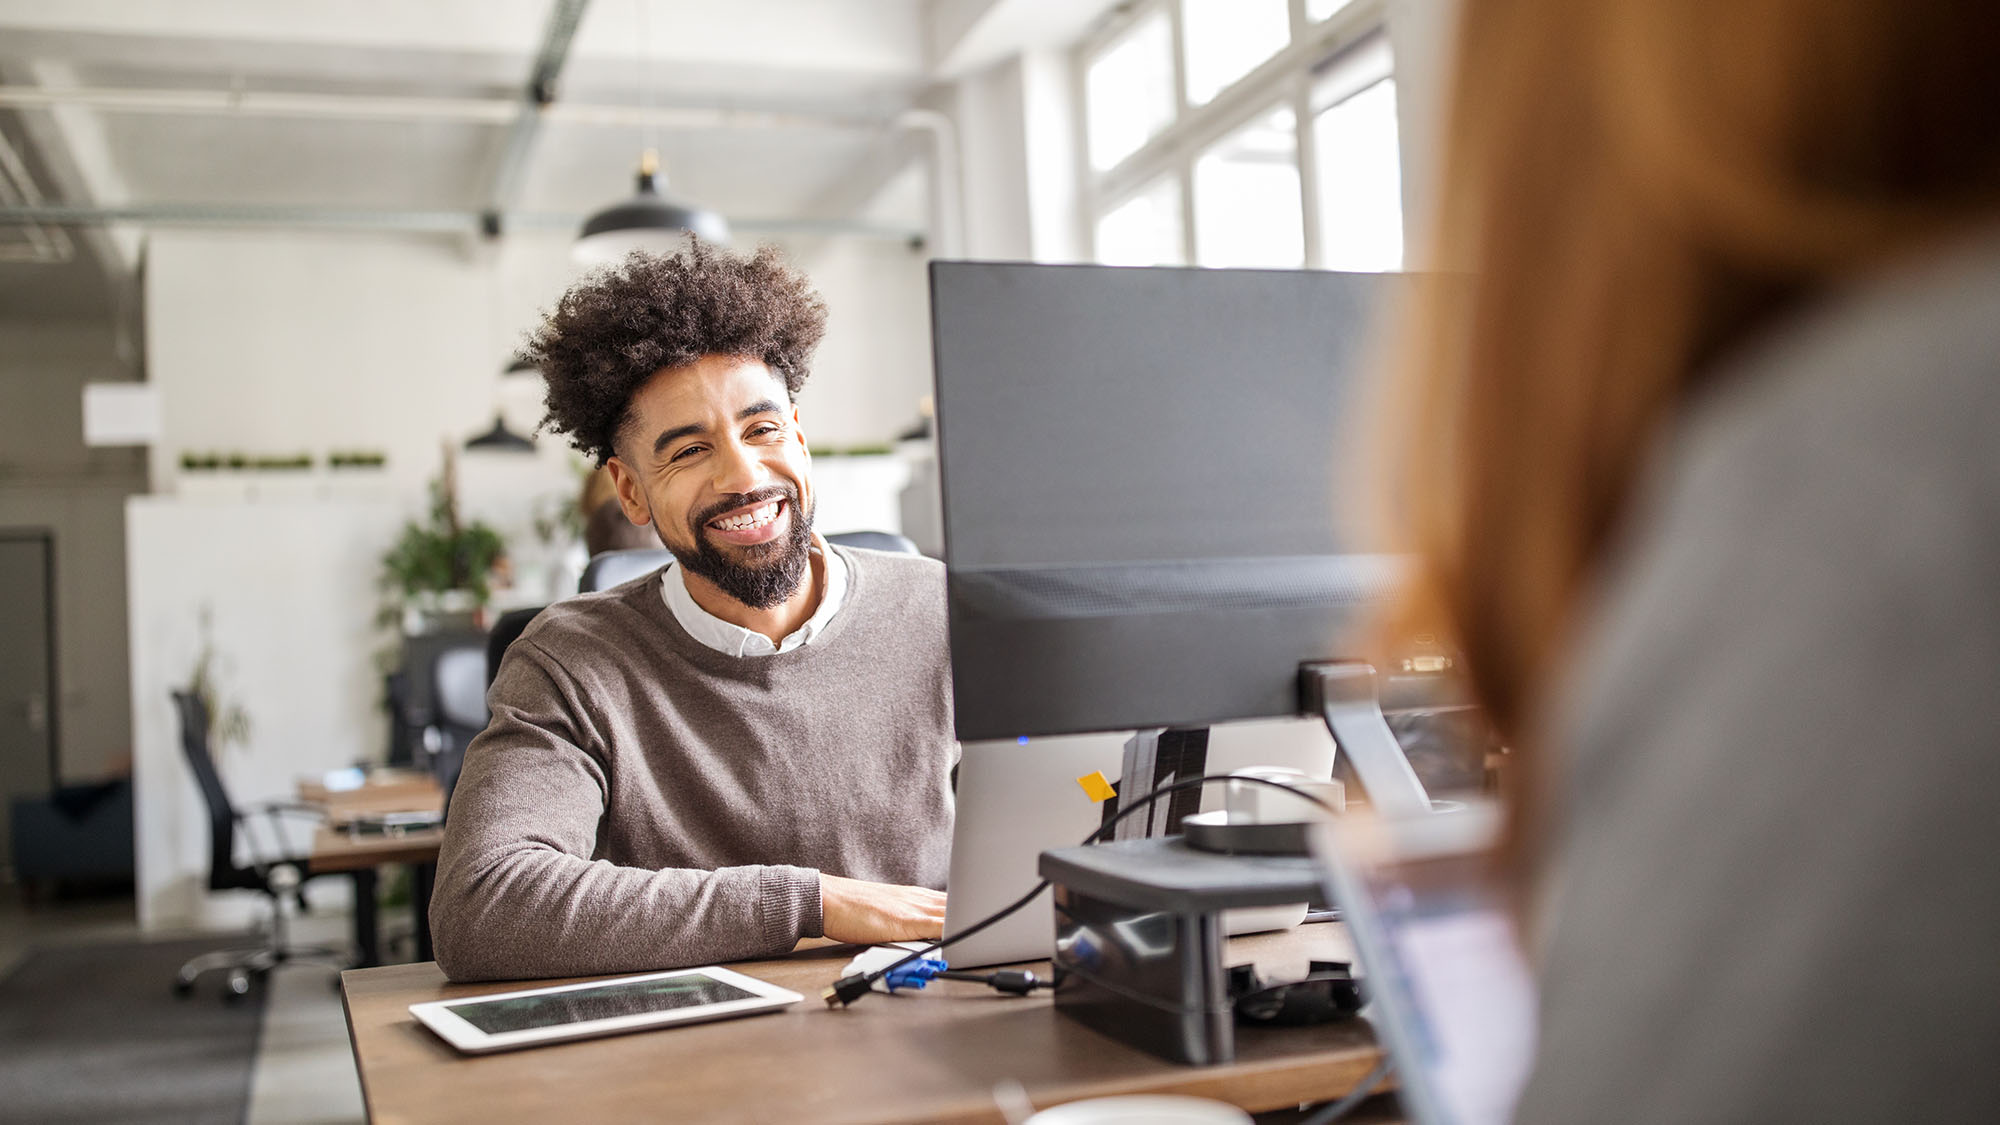 Happy business professionals working in office